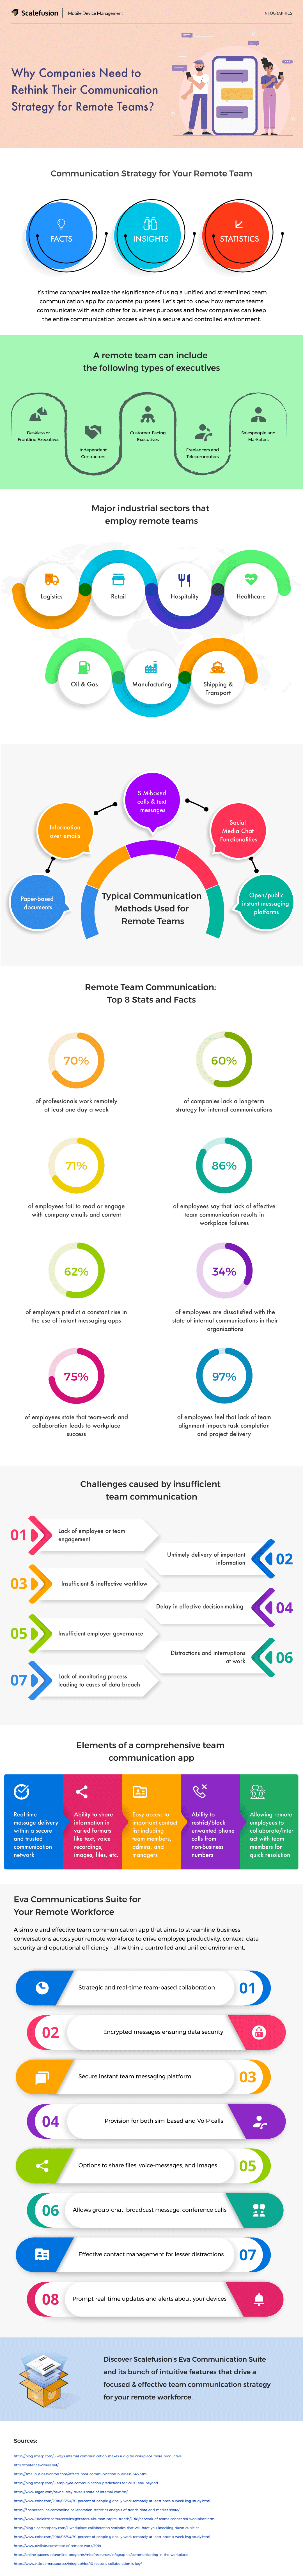 Why Companies Need to Rethink Their Communication Strategy for Remote Teams #Infographic